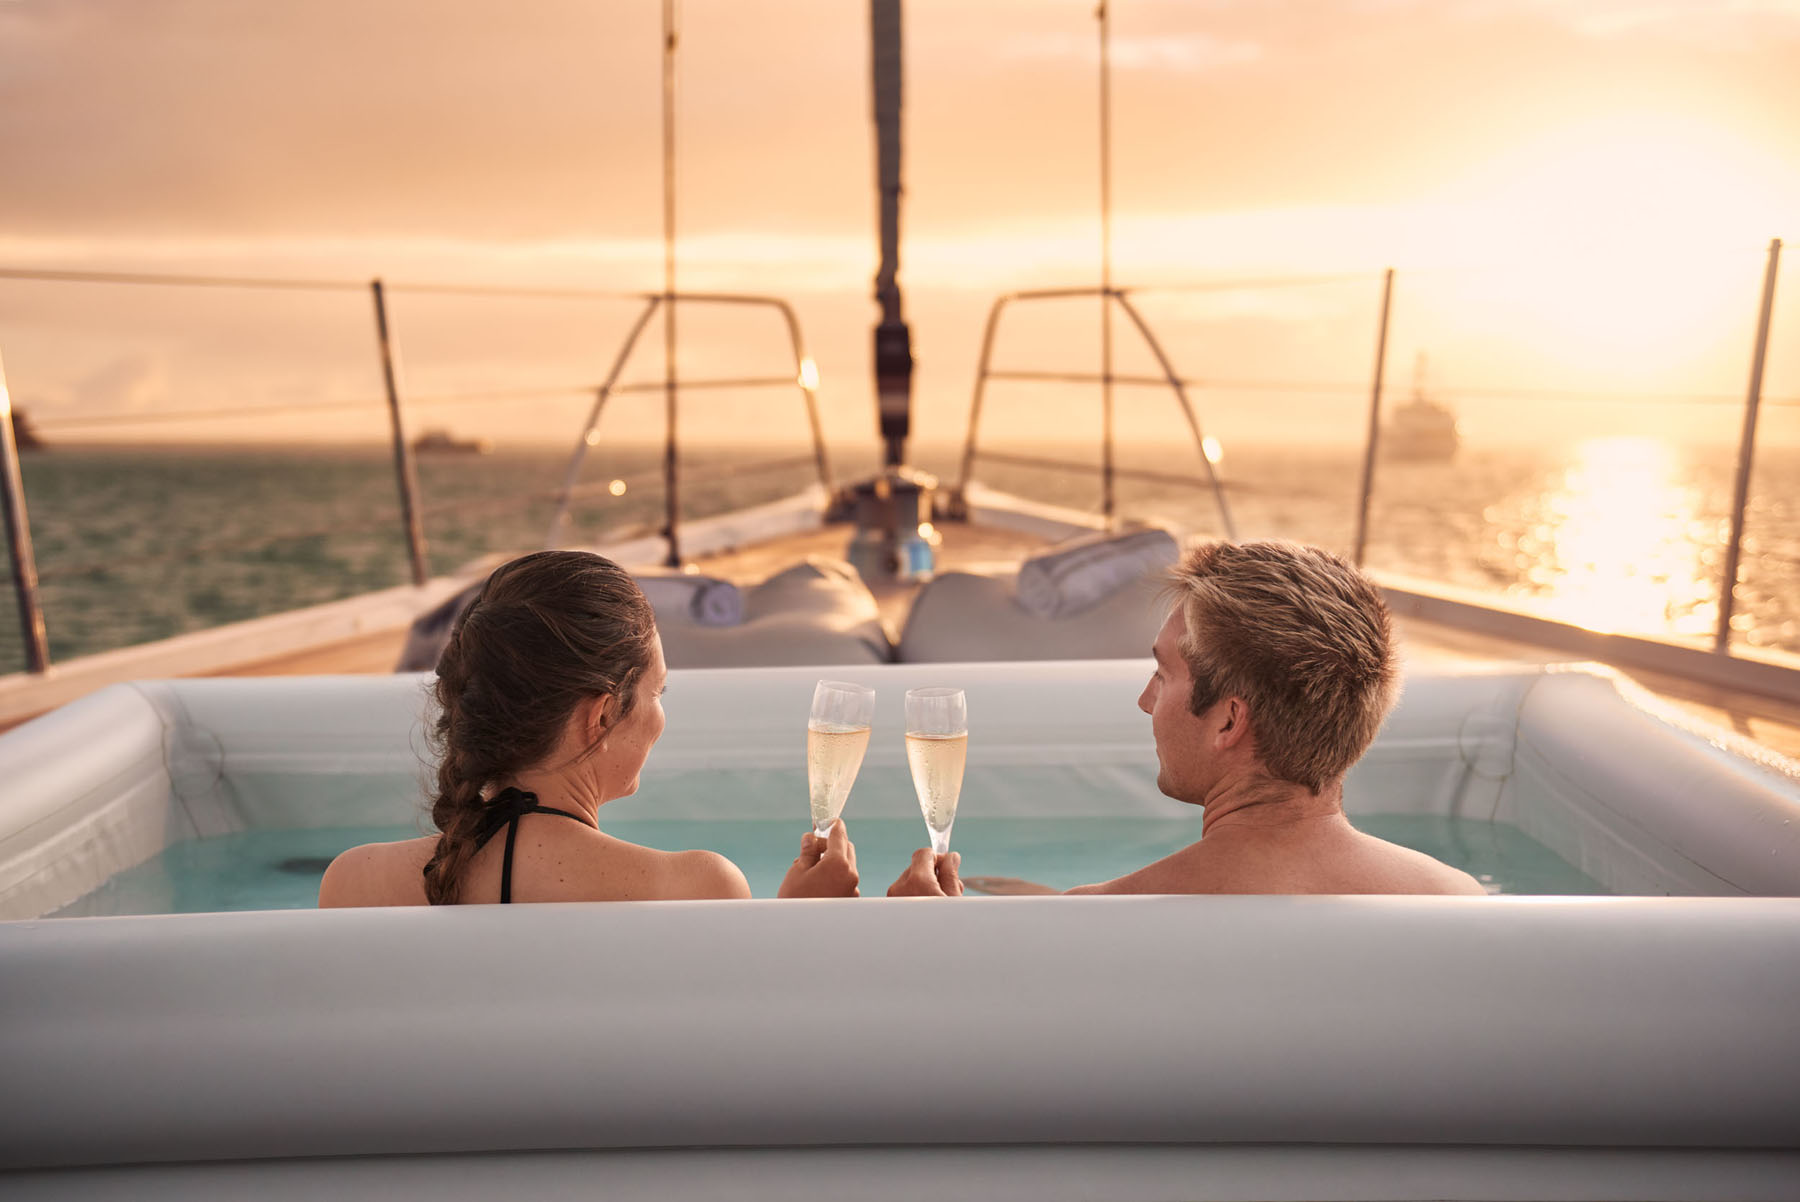 A couple enjoying champagne in the hot tub on a yacht as the sun sets